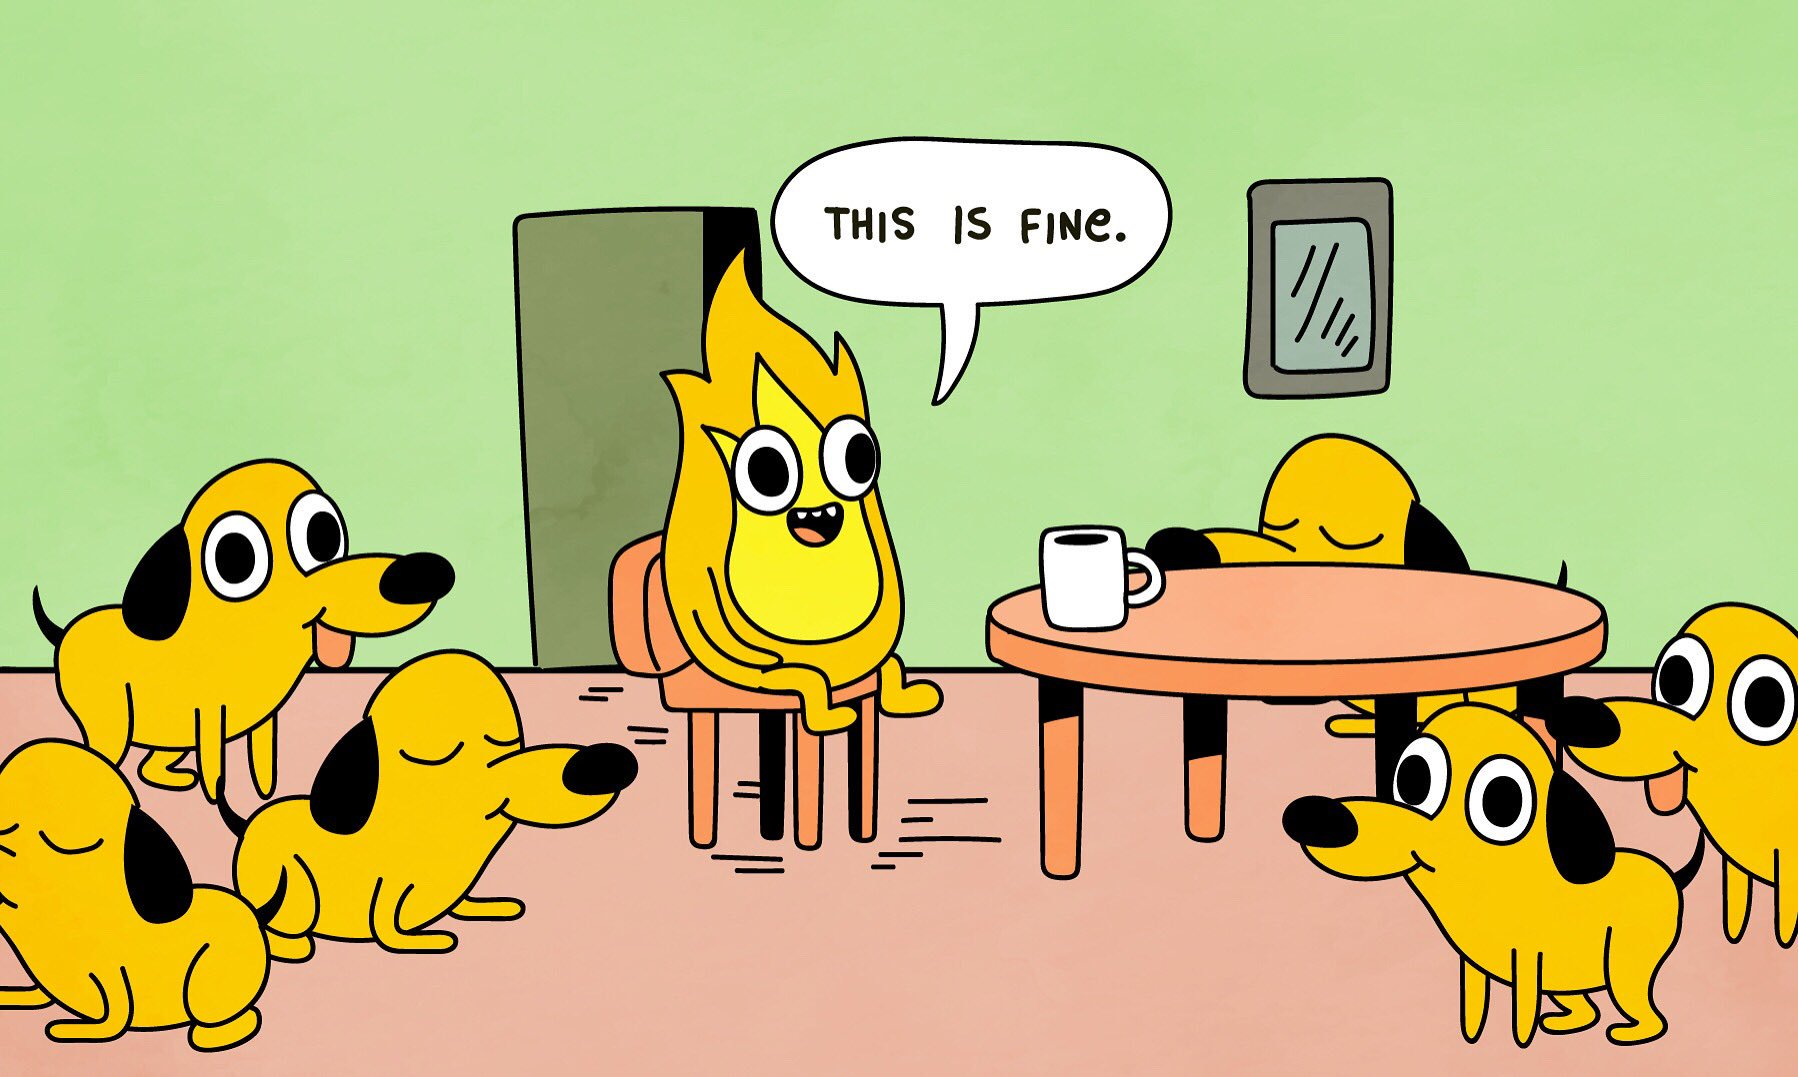 This is fine - Alex Villegas, Twitter